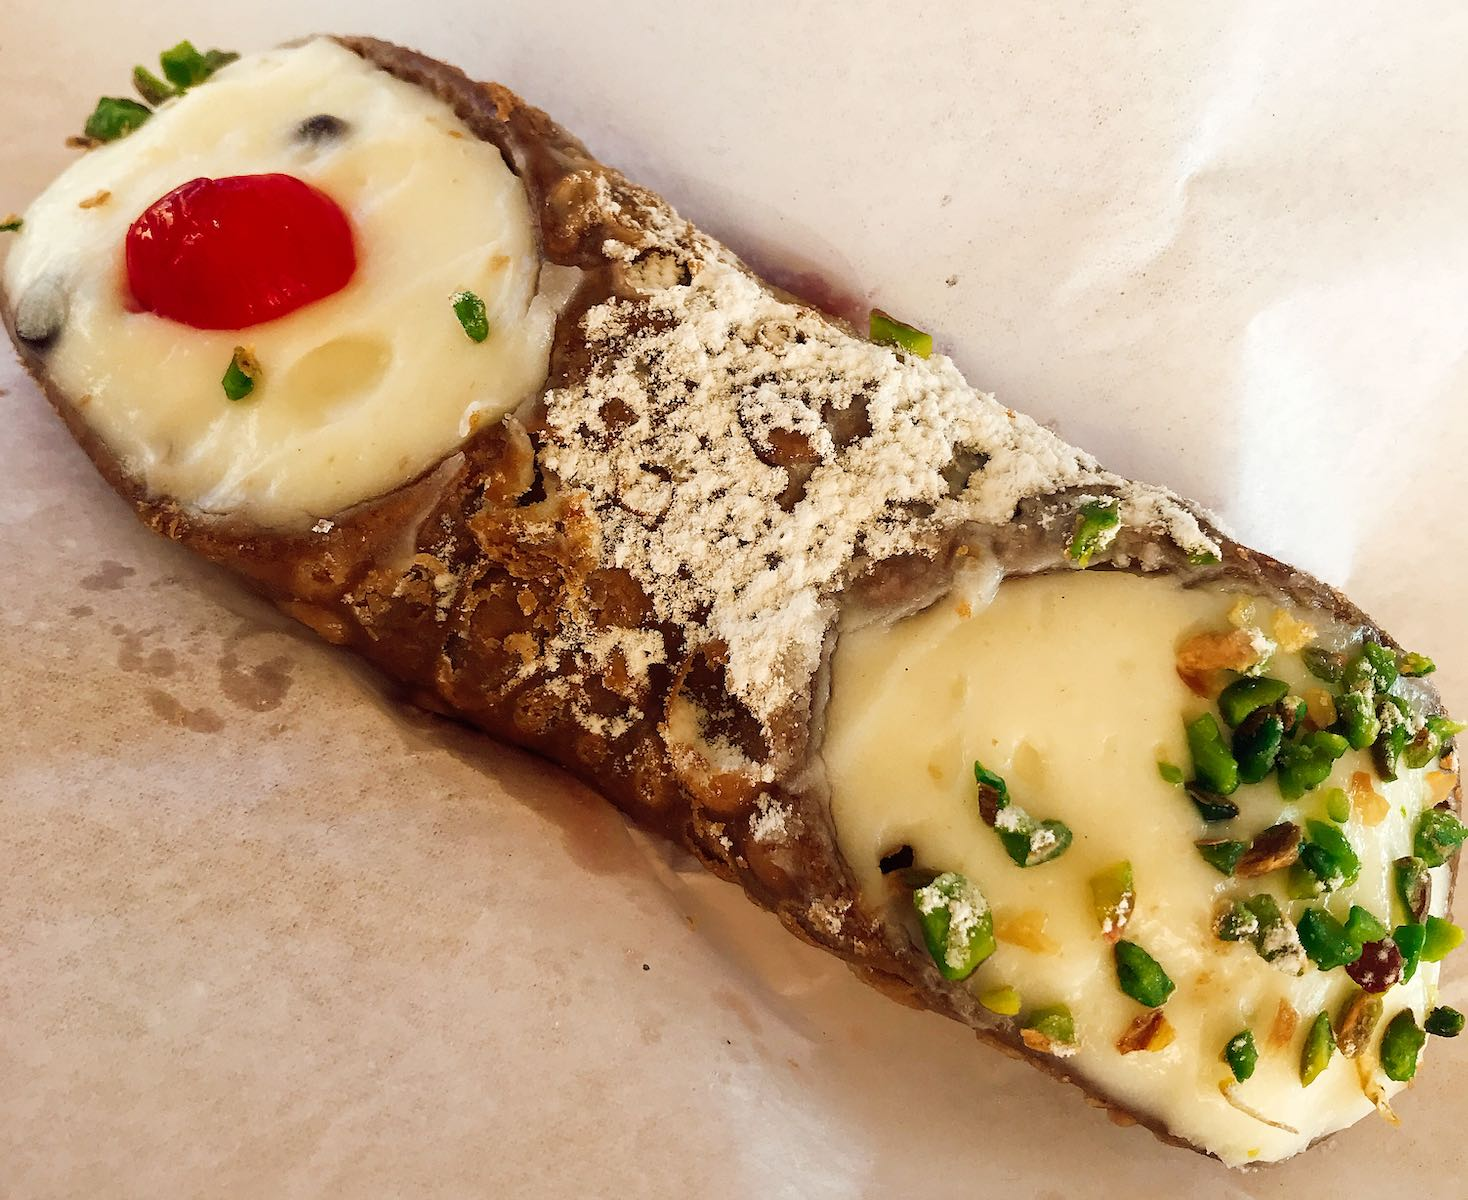 Cannoli with pistachio and cherry